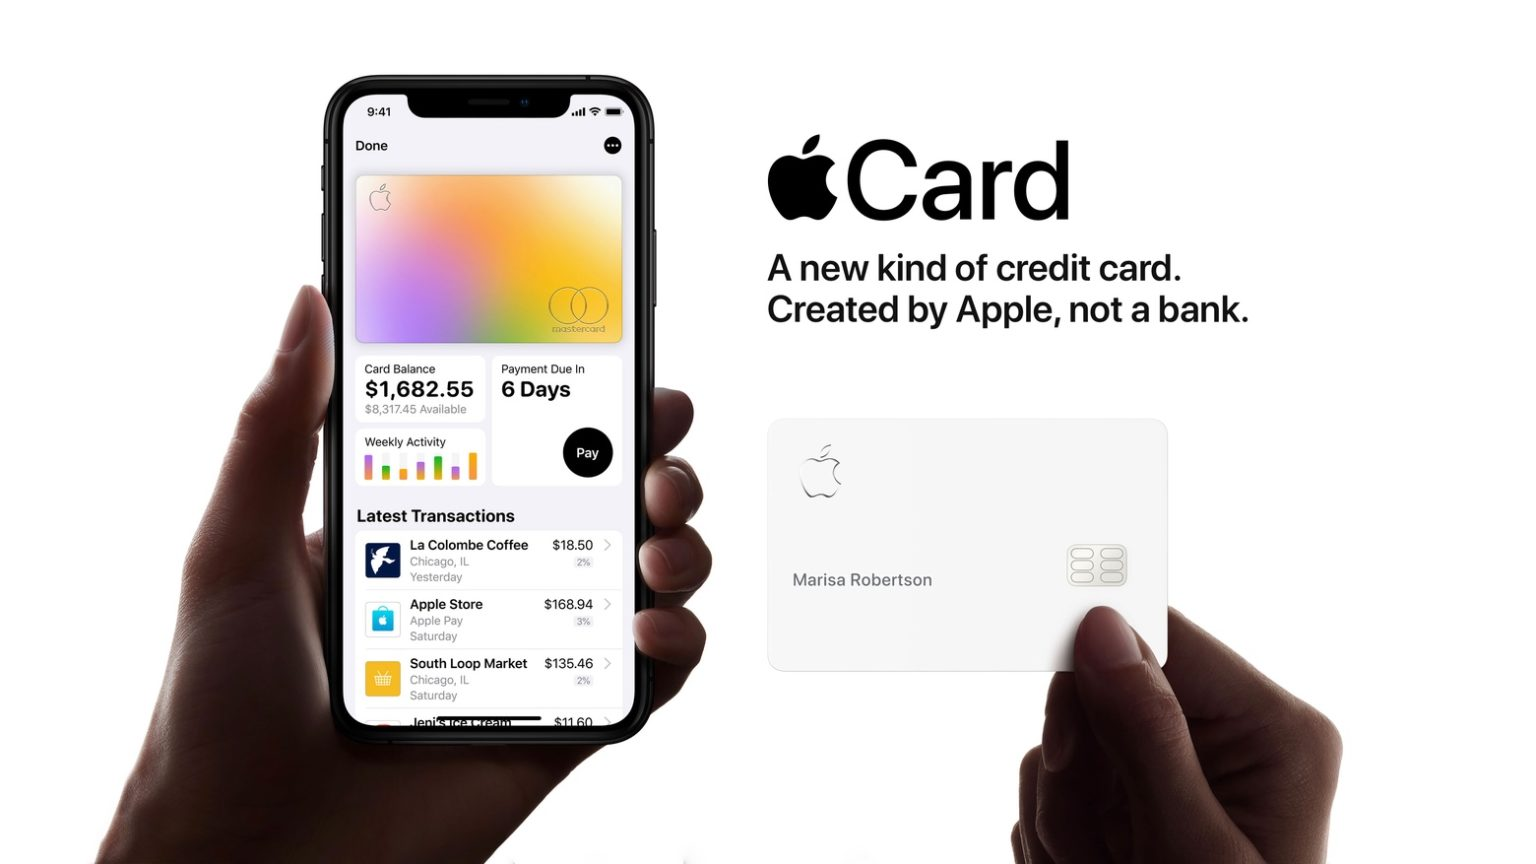 Apple Card is underwritten by Goldman Sachs.